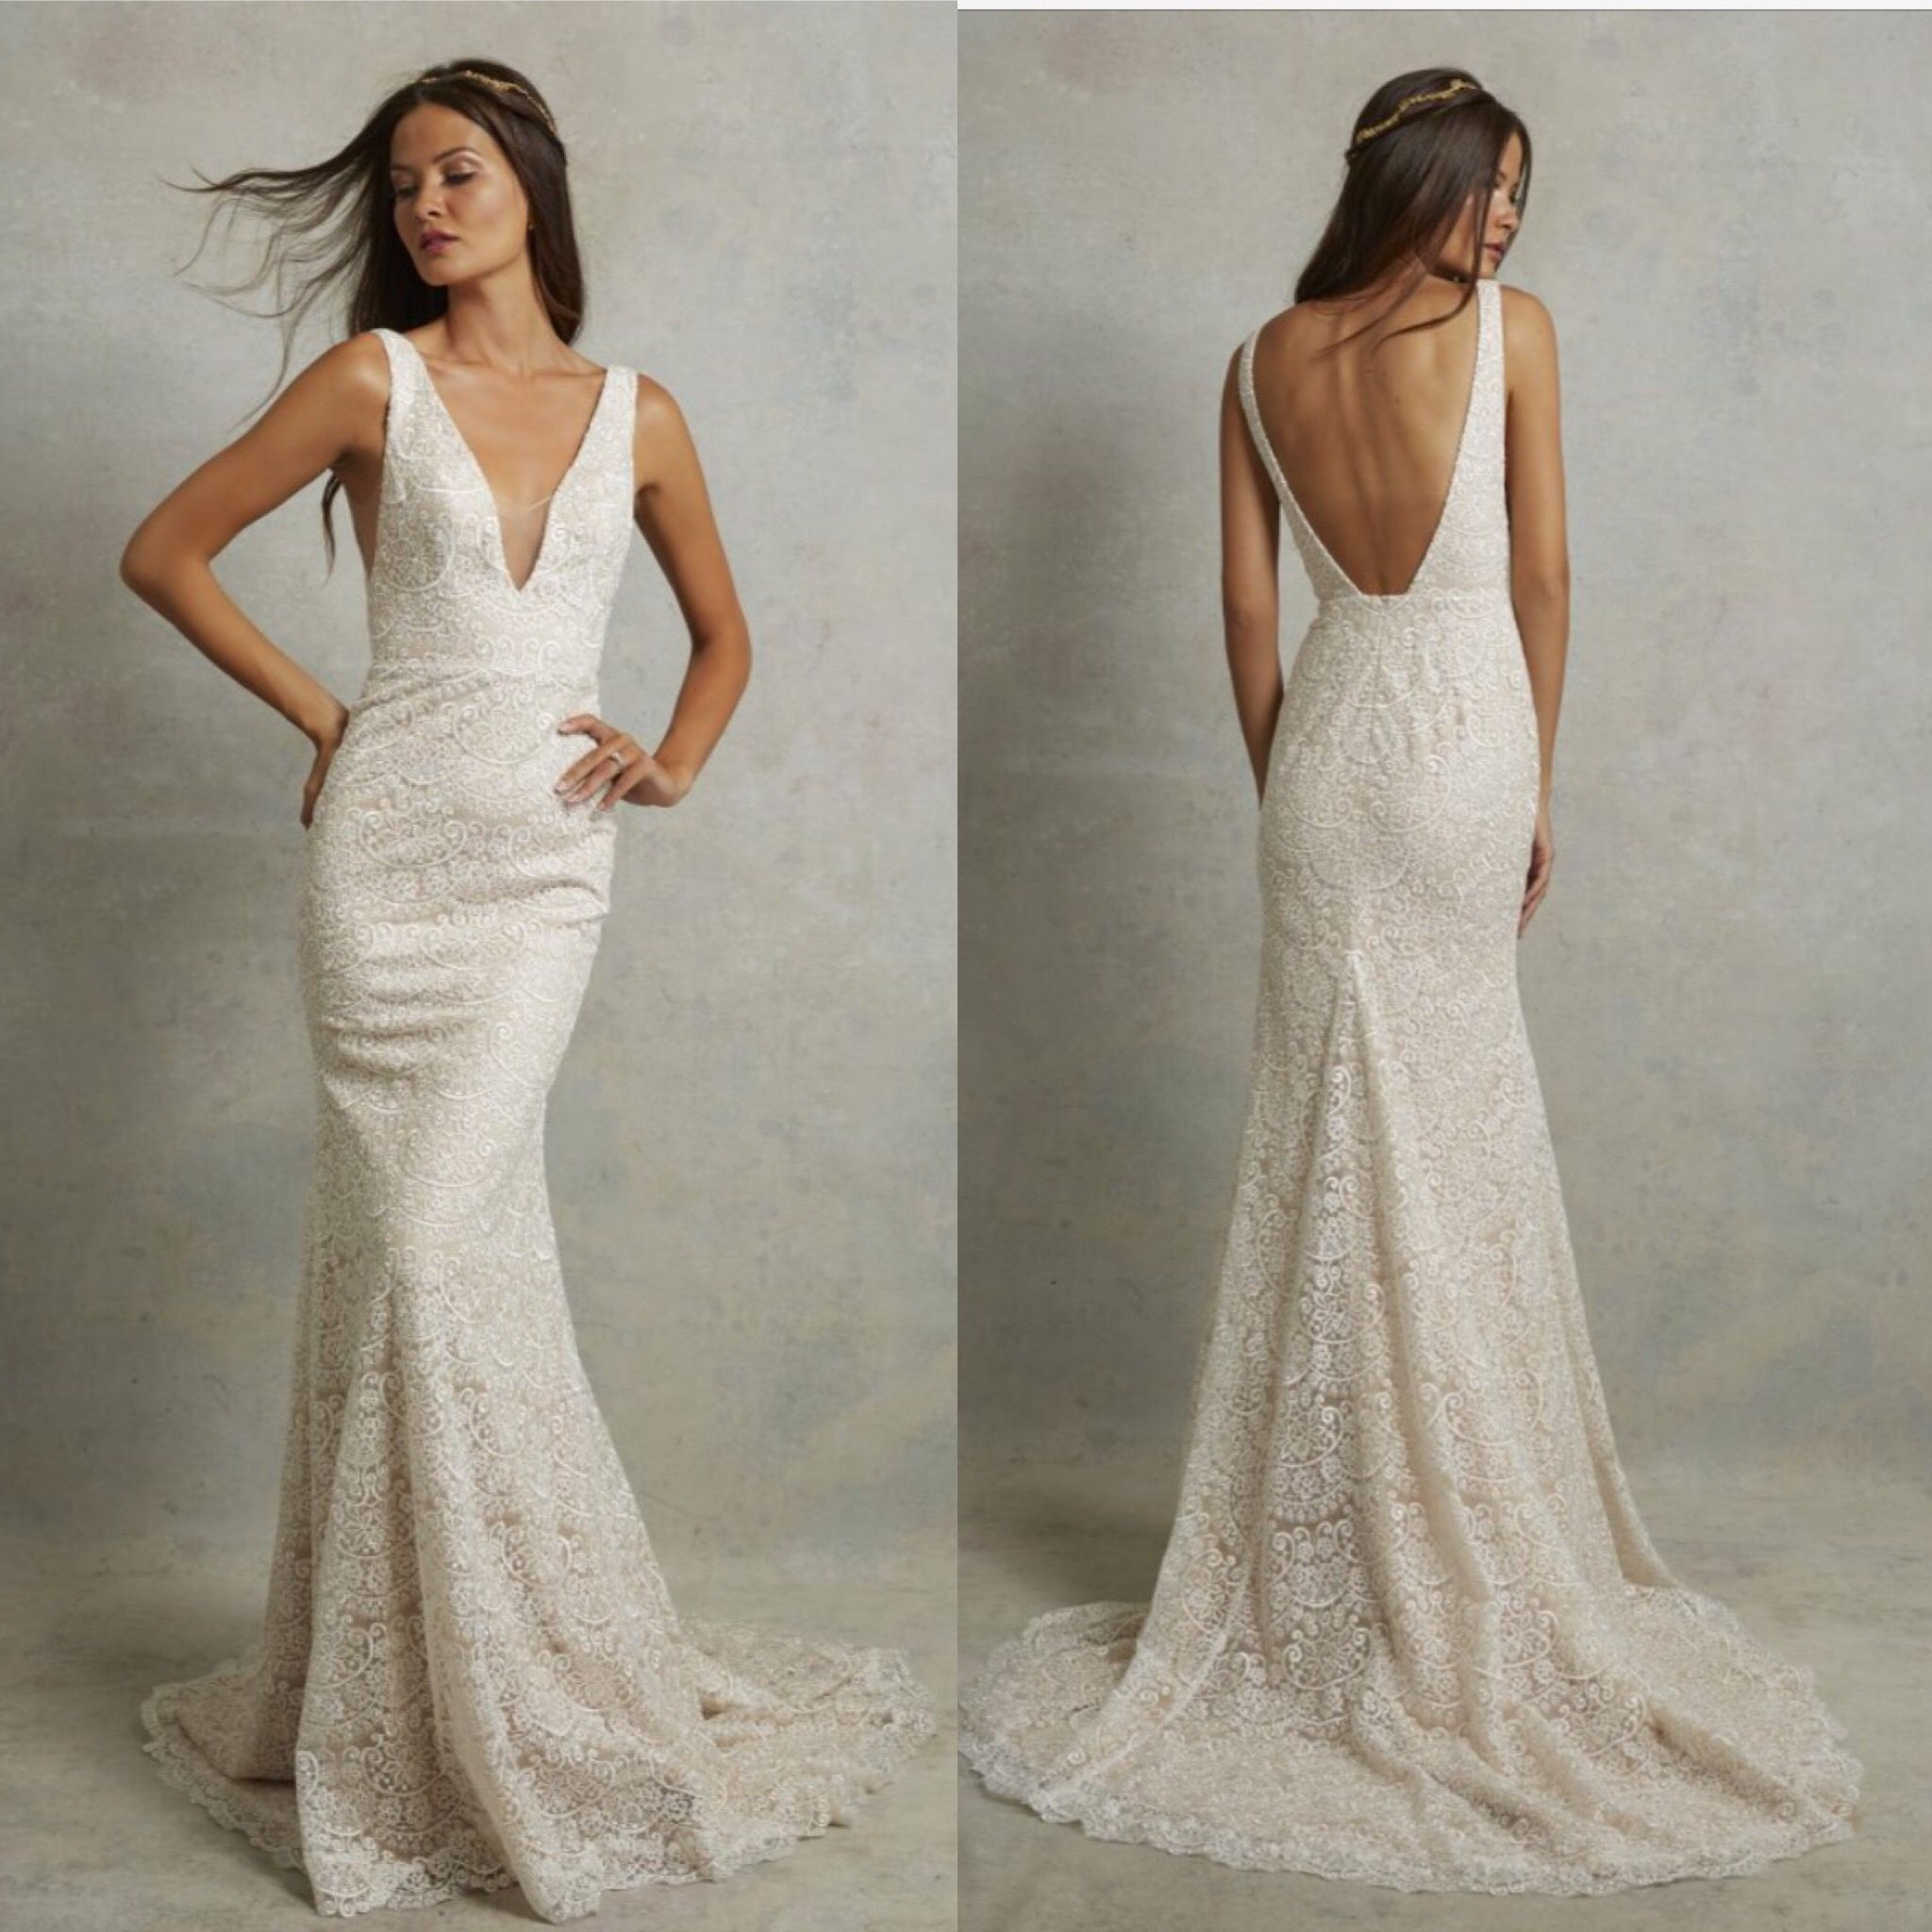 639532545c9 Wedding Gown Consignment Shops In Maryland - Gomes Weine AG